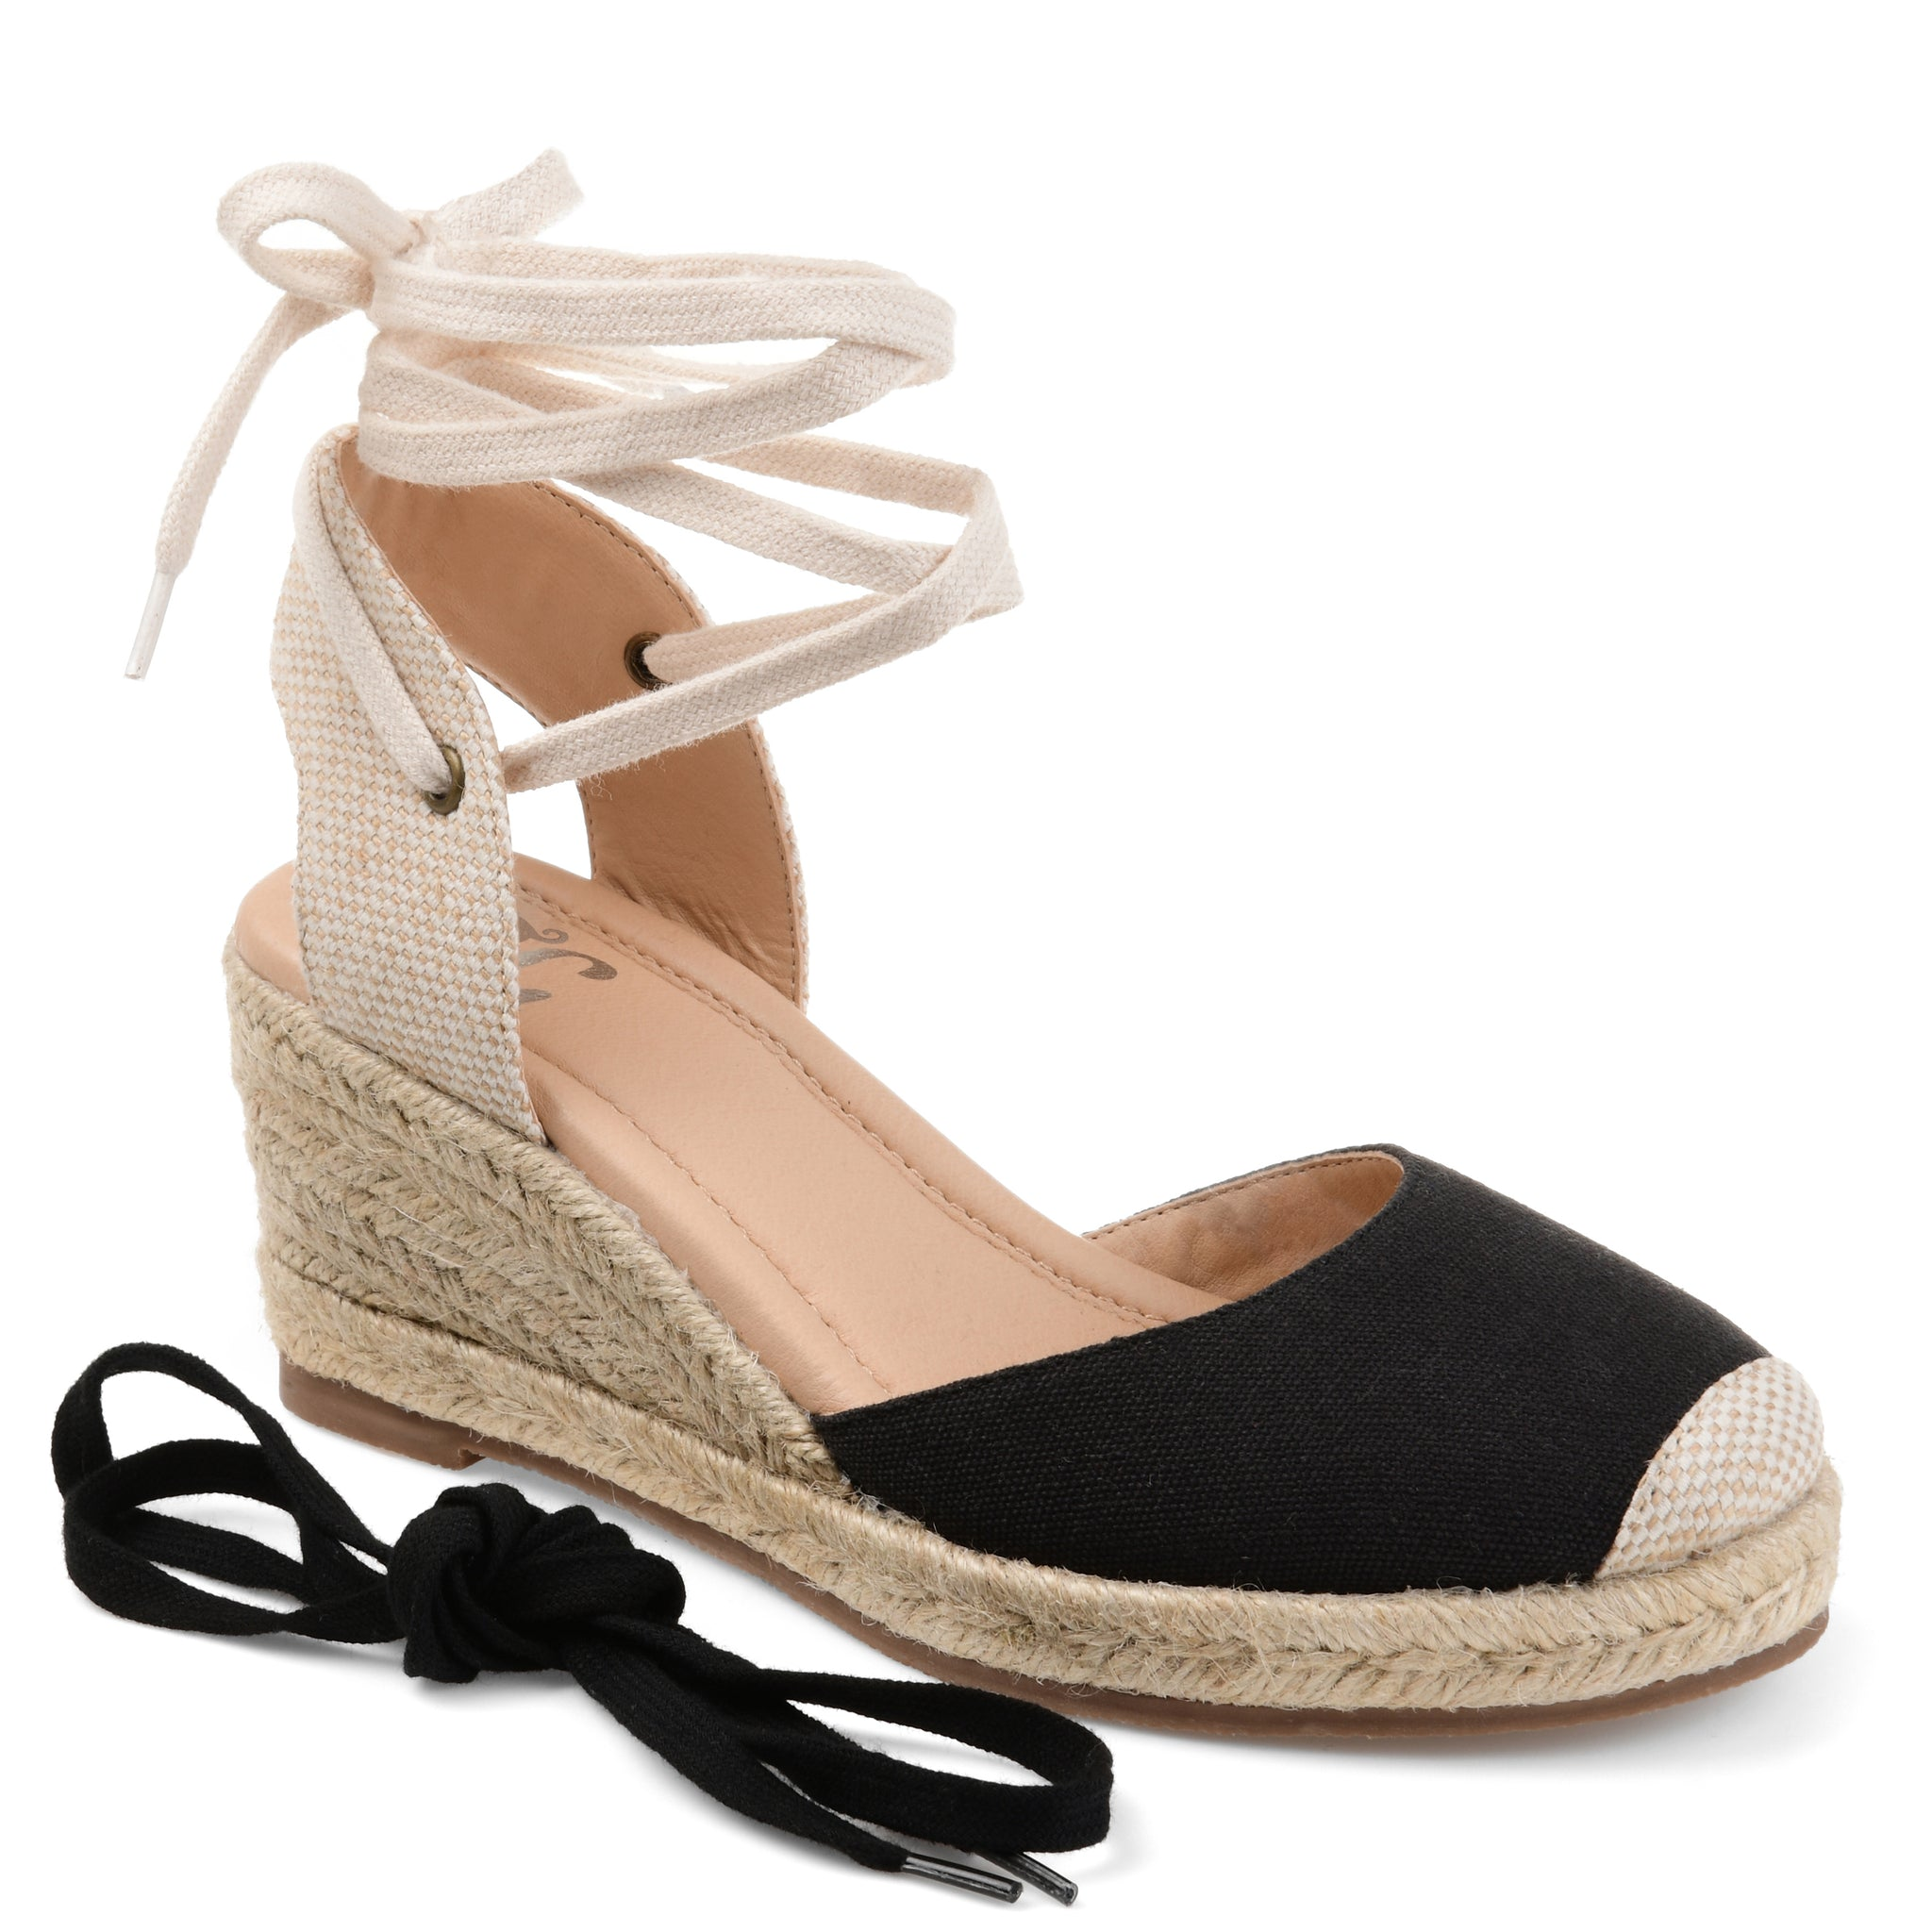 Round Toe Espadrille Wrap Around Wedge